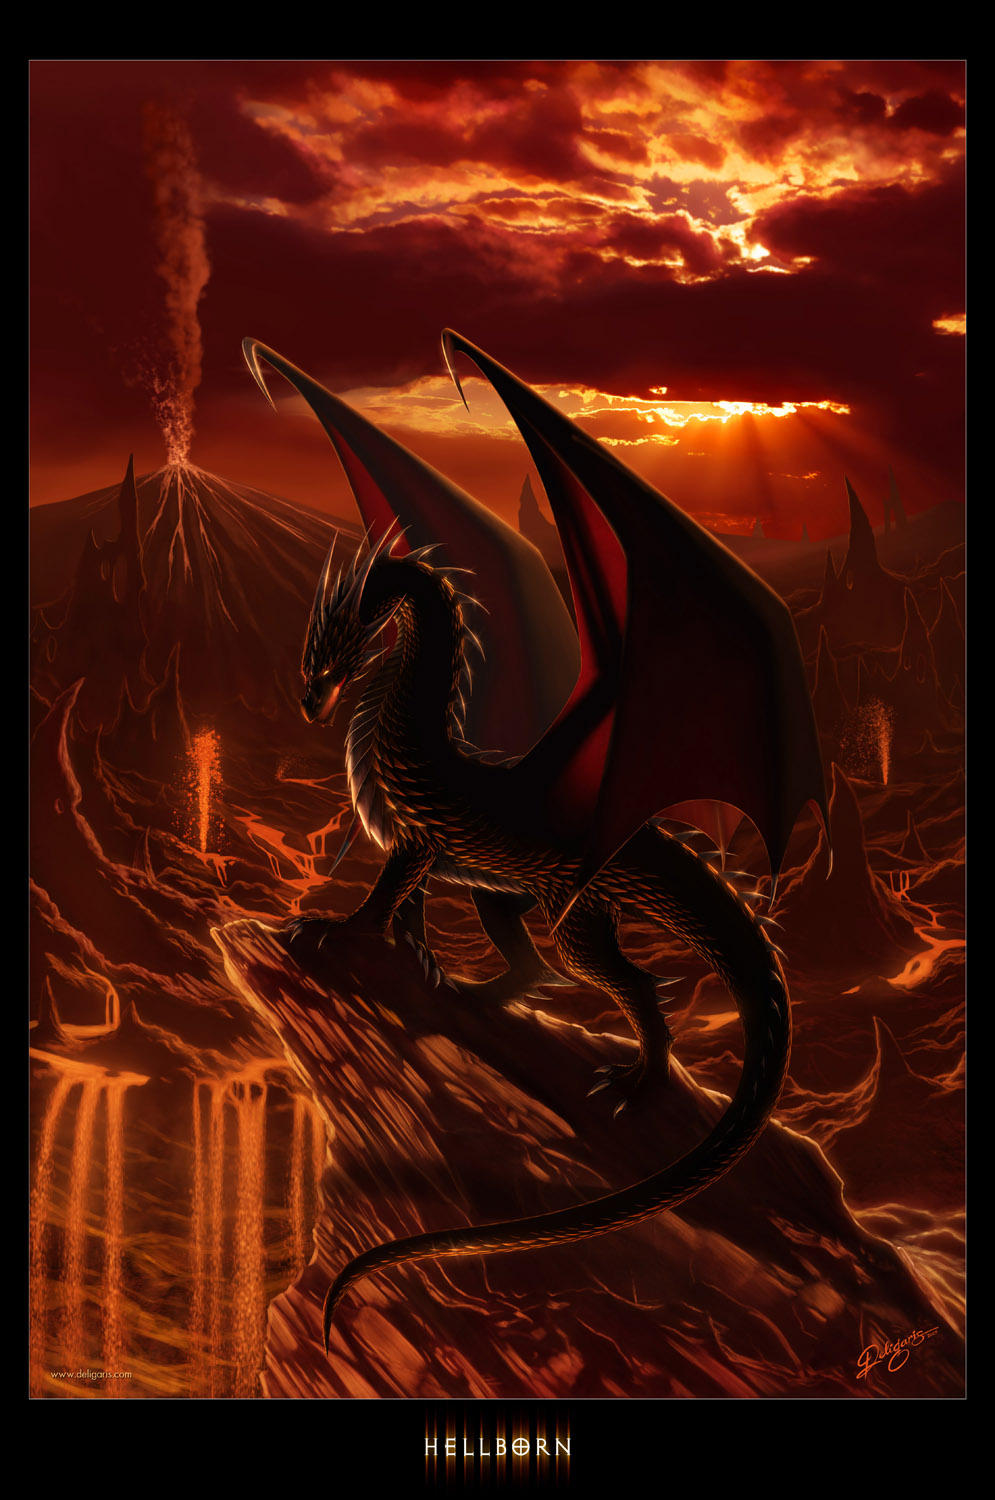 Hellborn dans Dragons Hellborn_by_deligaris